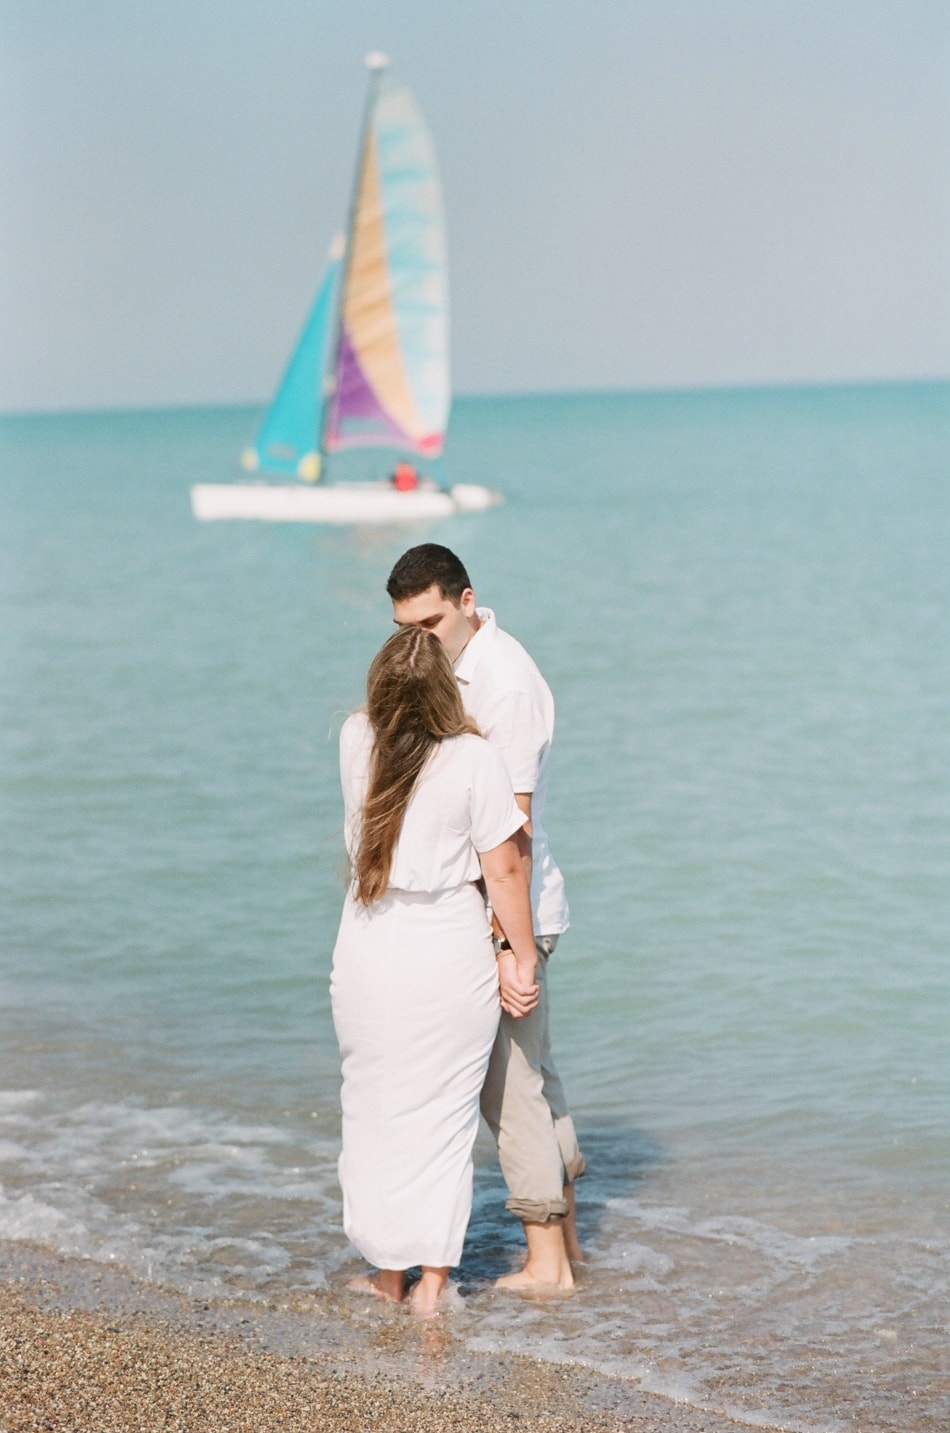 Bride and groom kissing in front of sail boat at Glencoe beach